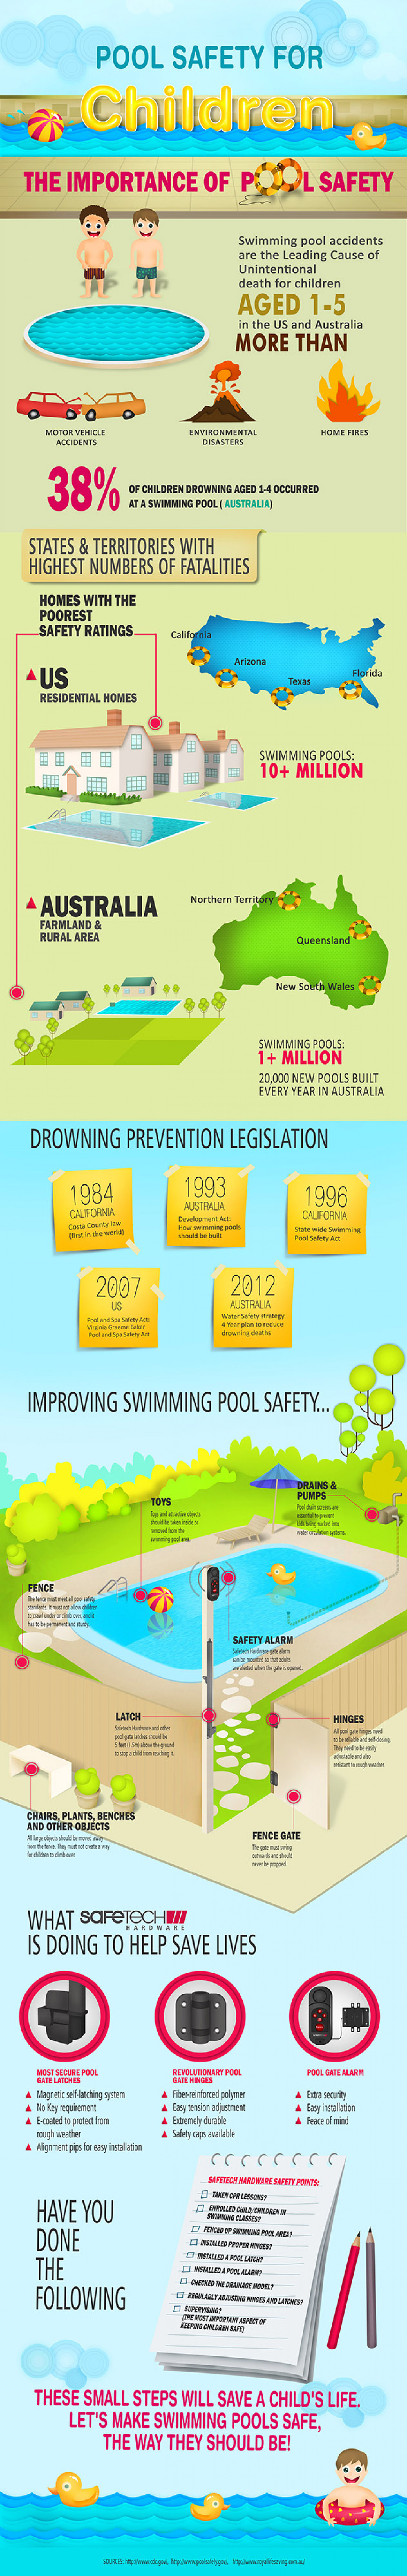 Pool Safety For Children Infographic